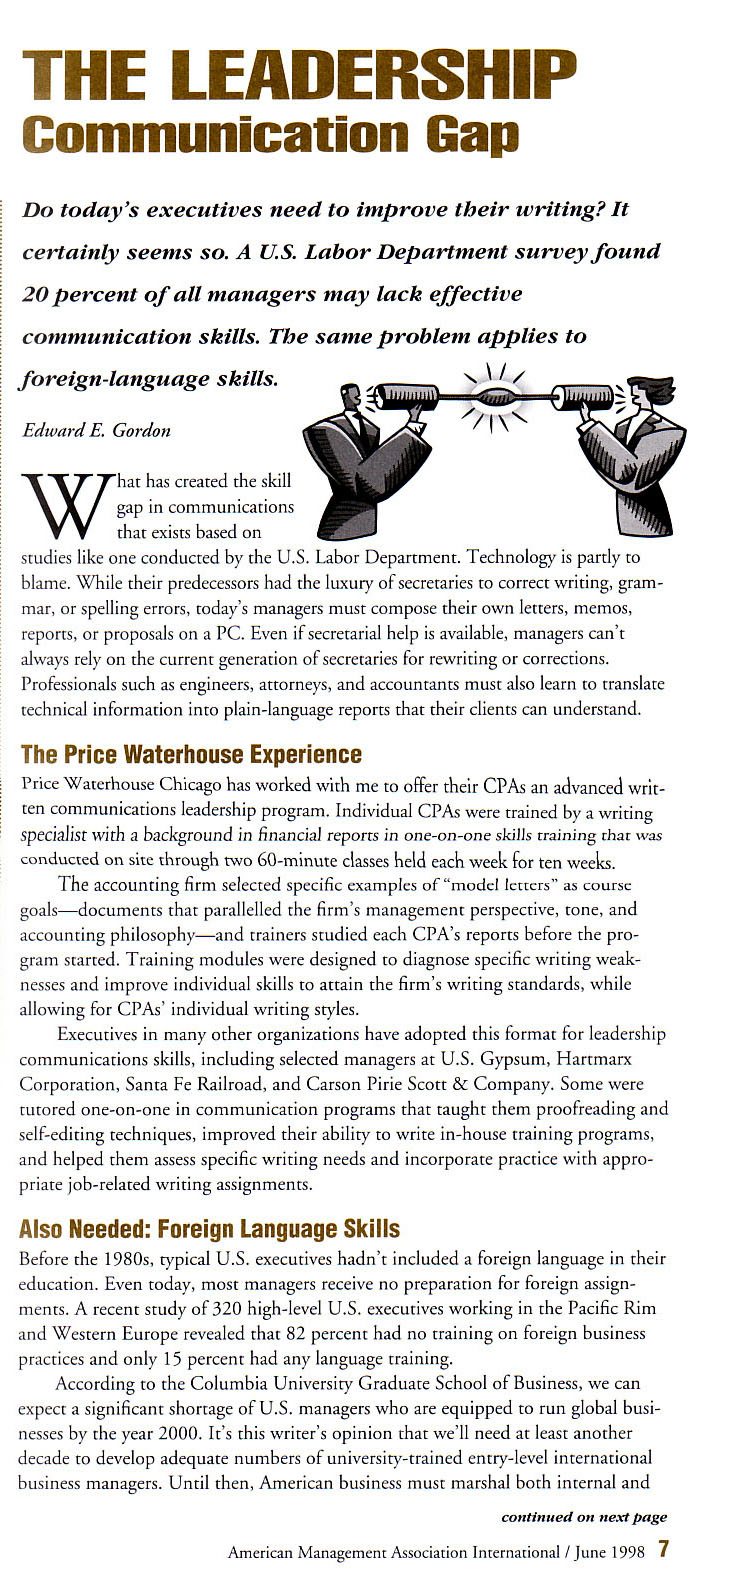 American Management Association International-June 1998-The Leadership Page 1.jpg